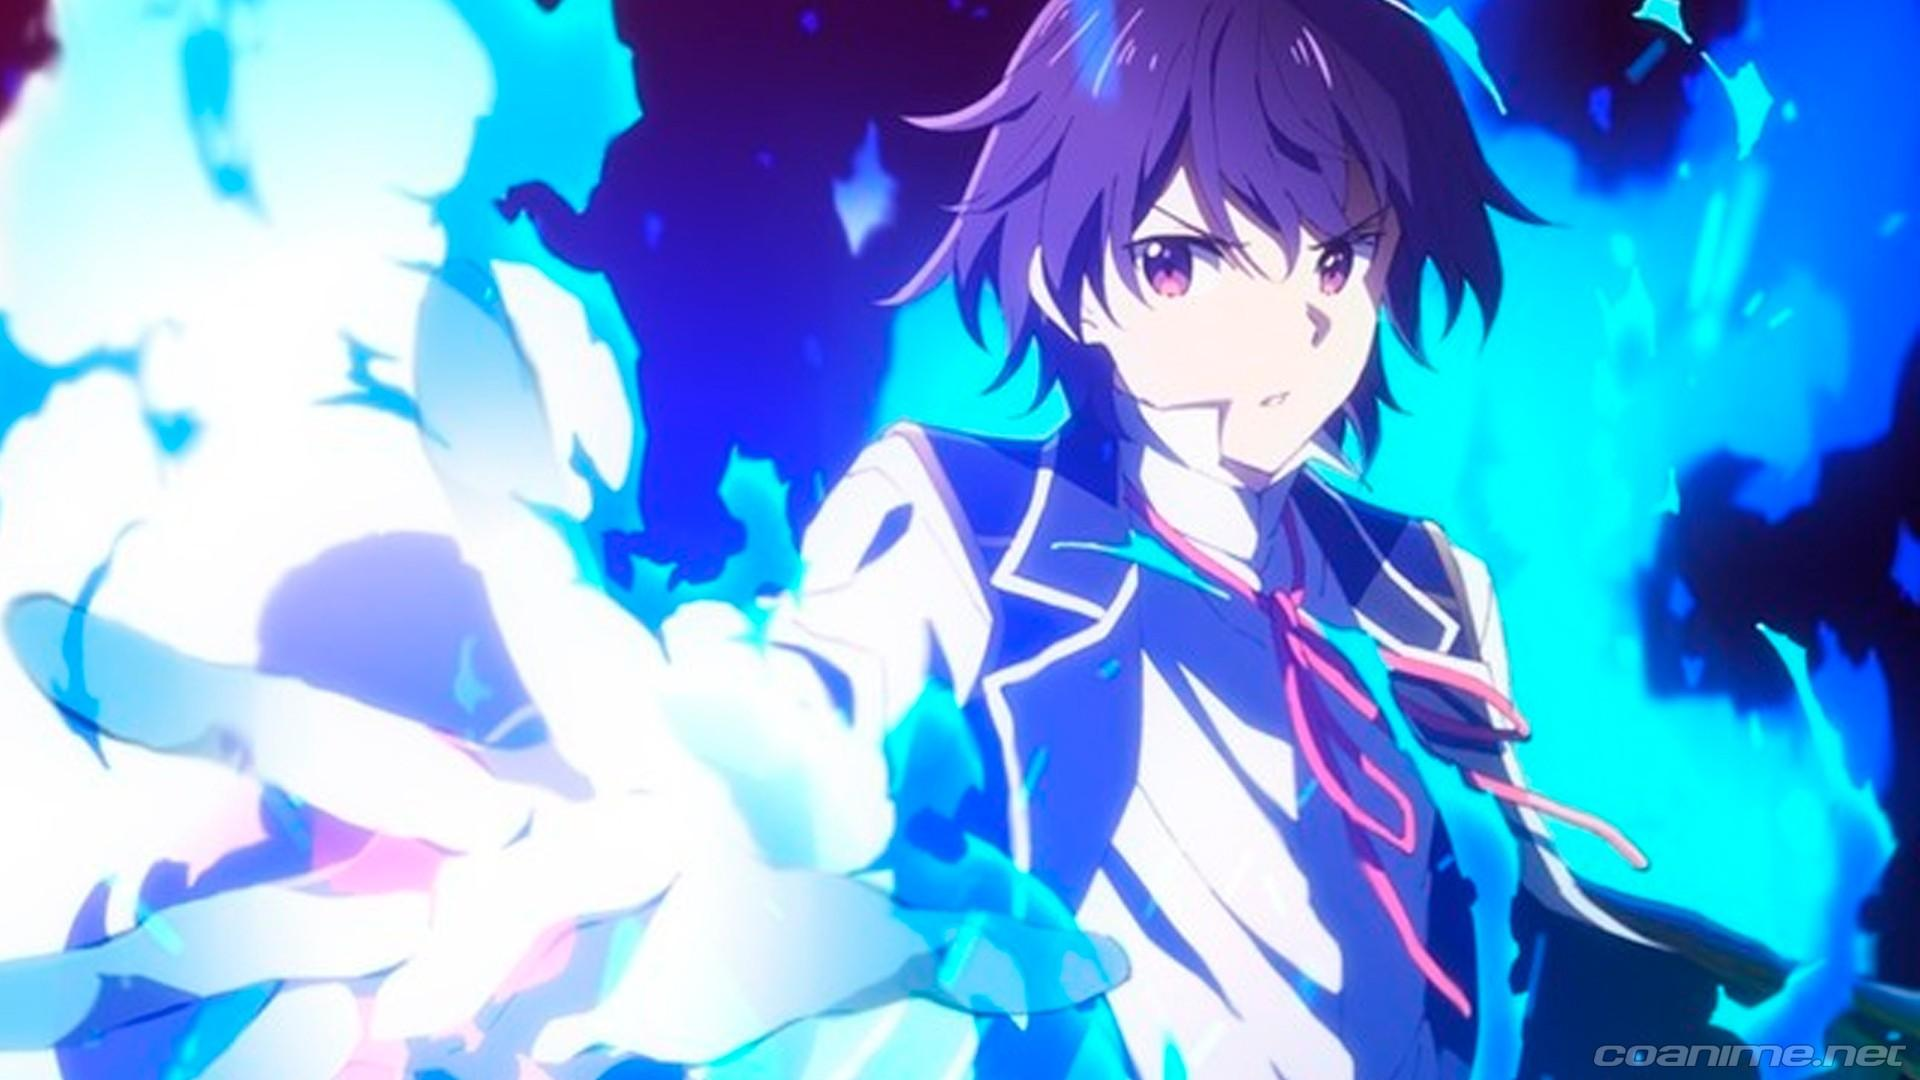 kenja no mago season 2: release date, plot and characters